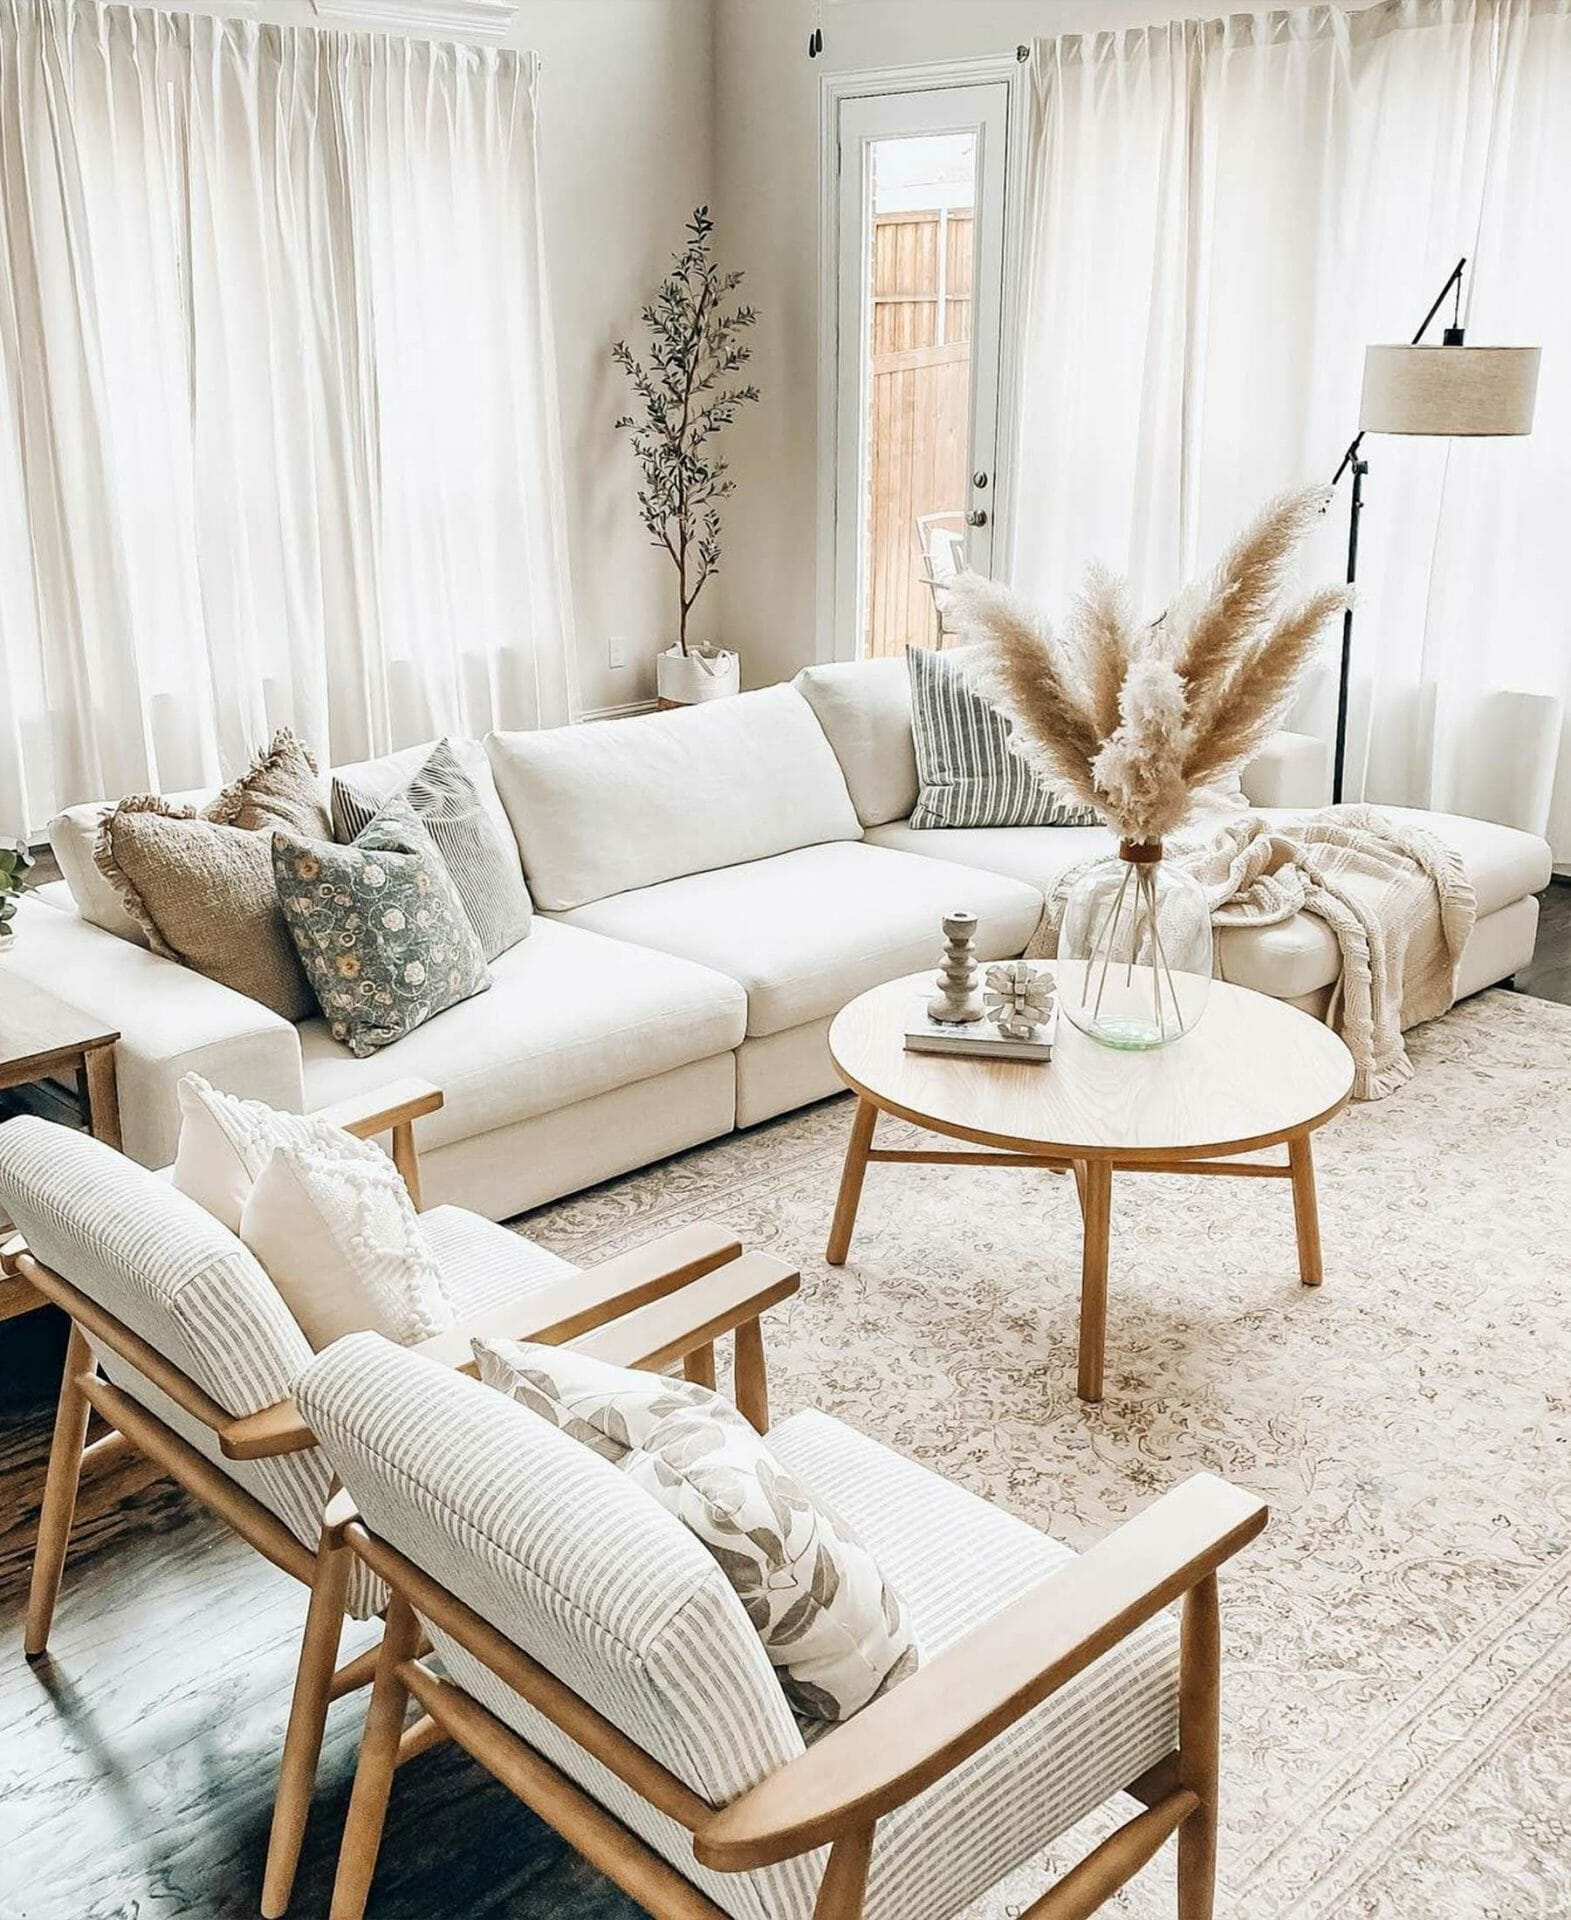 A white sectional sofa and two white armchairs are shown with pampas grass.